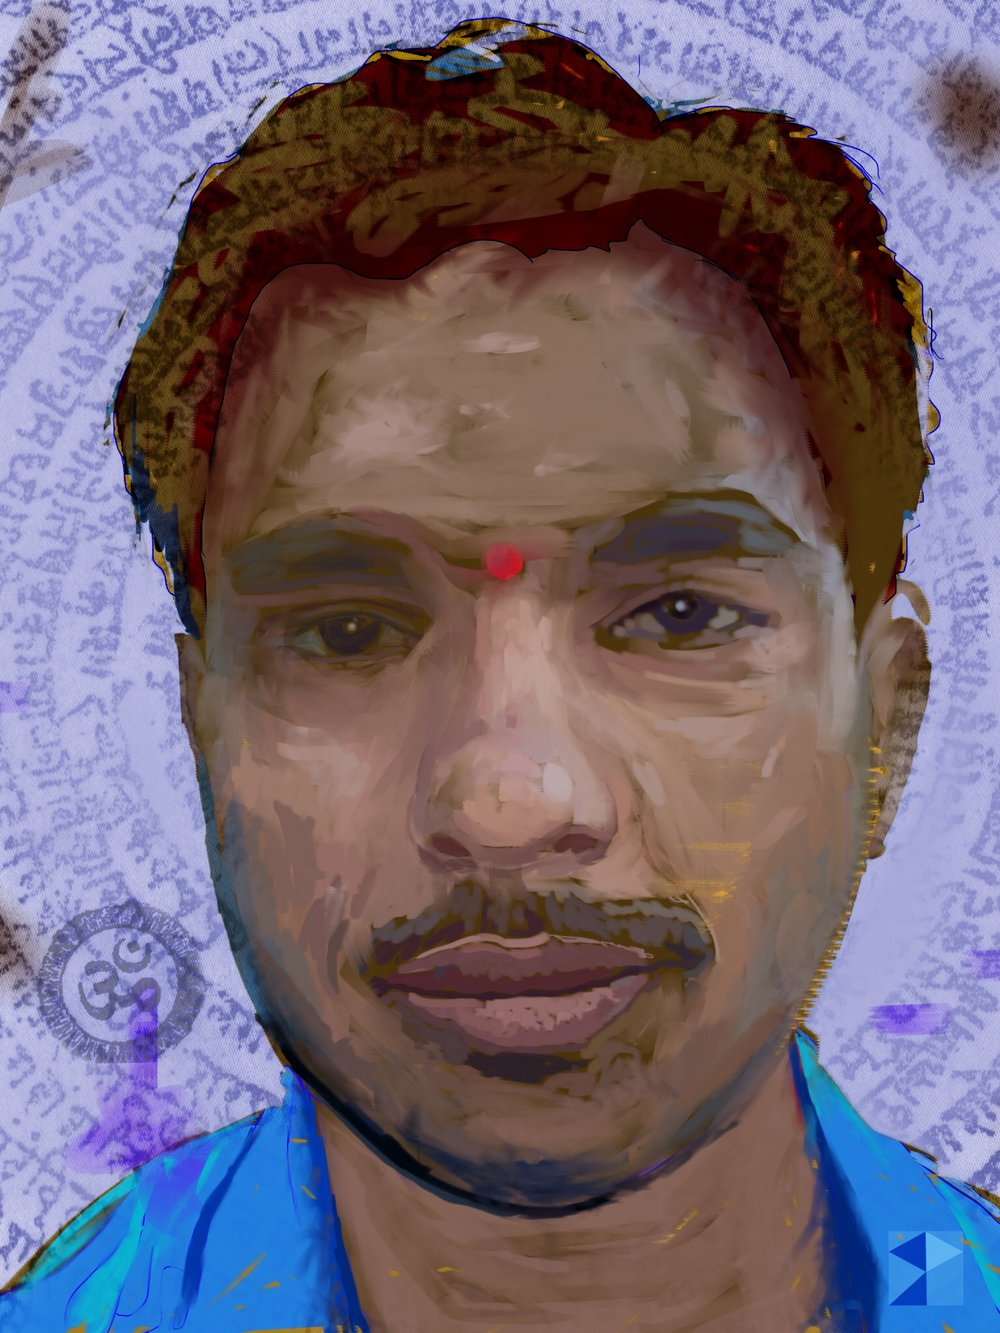 Mahesh, 2, Hindu Nationalist   FBSelfie, ProCreate, Pencil 53, Photoshop, iPad, Desktop Digital Image Dimensions Variable © SP/MWW.2015